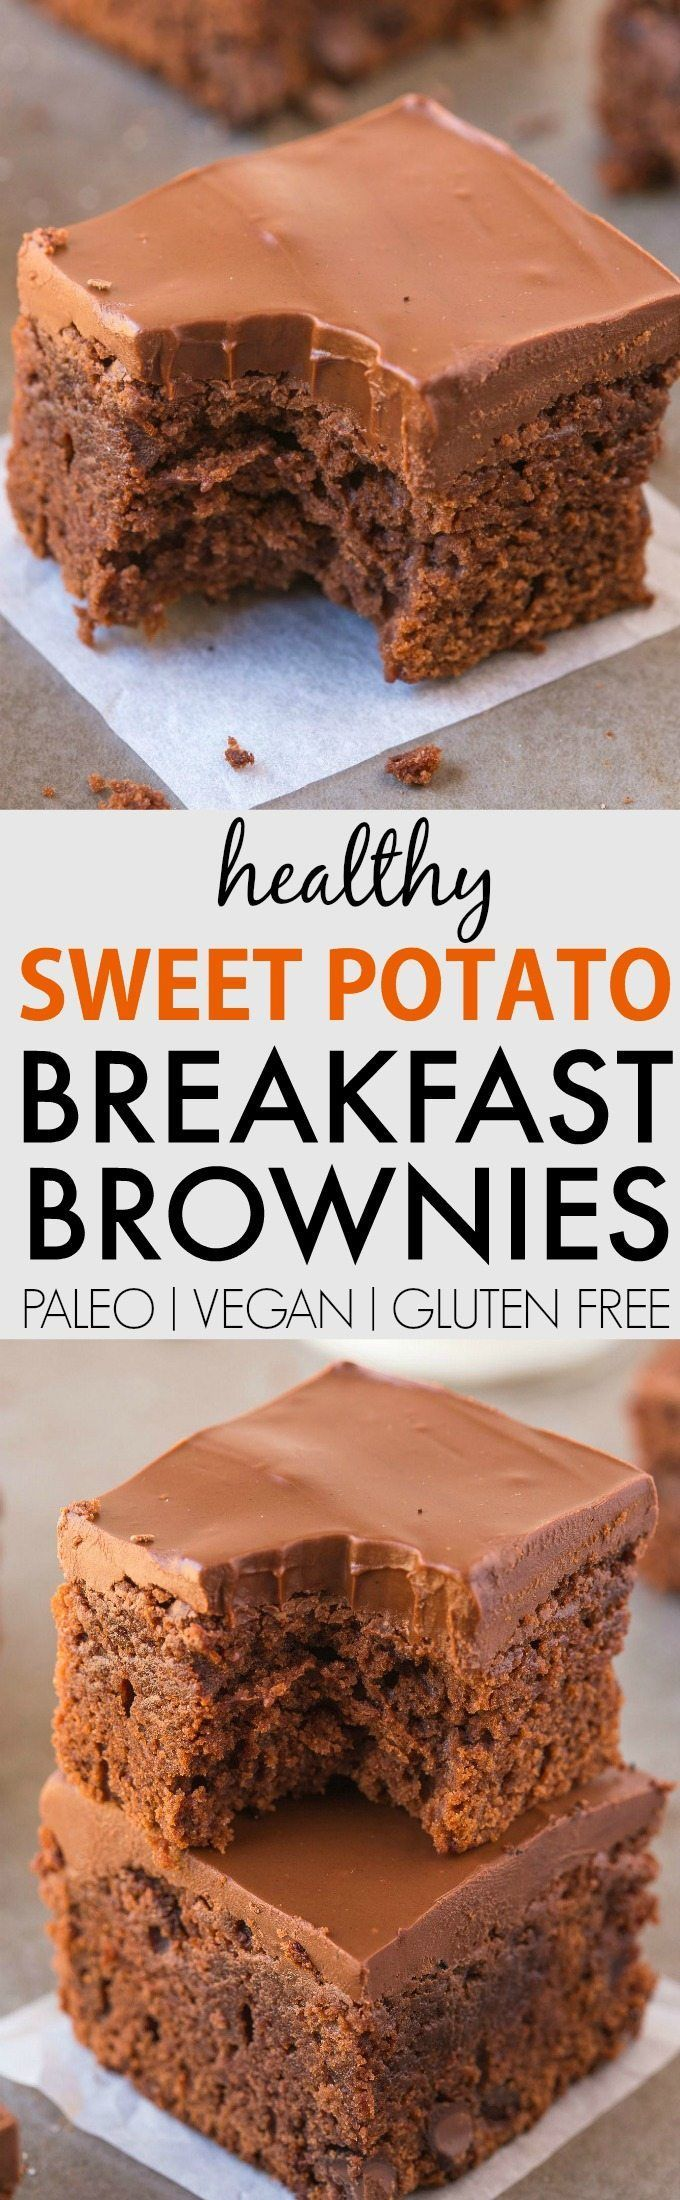 Healthy 5 Ingredient Sweet Potato BREAKFAST Brownies (V, GF, P)- SUPER fudgy, hearty and LOADED with chocolate goodness, its the filling and satisfying guilt-free breakfast, snack or dessert! vegan, gluten free, paleo recipe- thebigmansworld.com